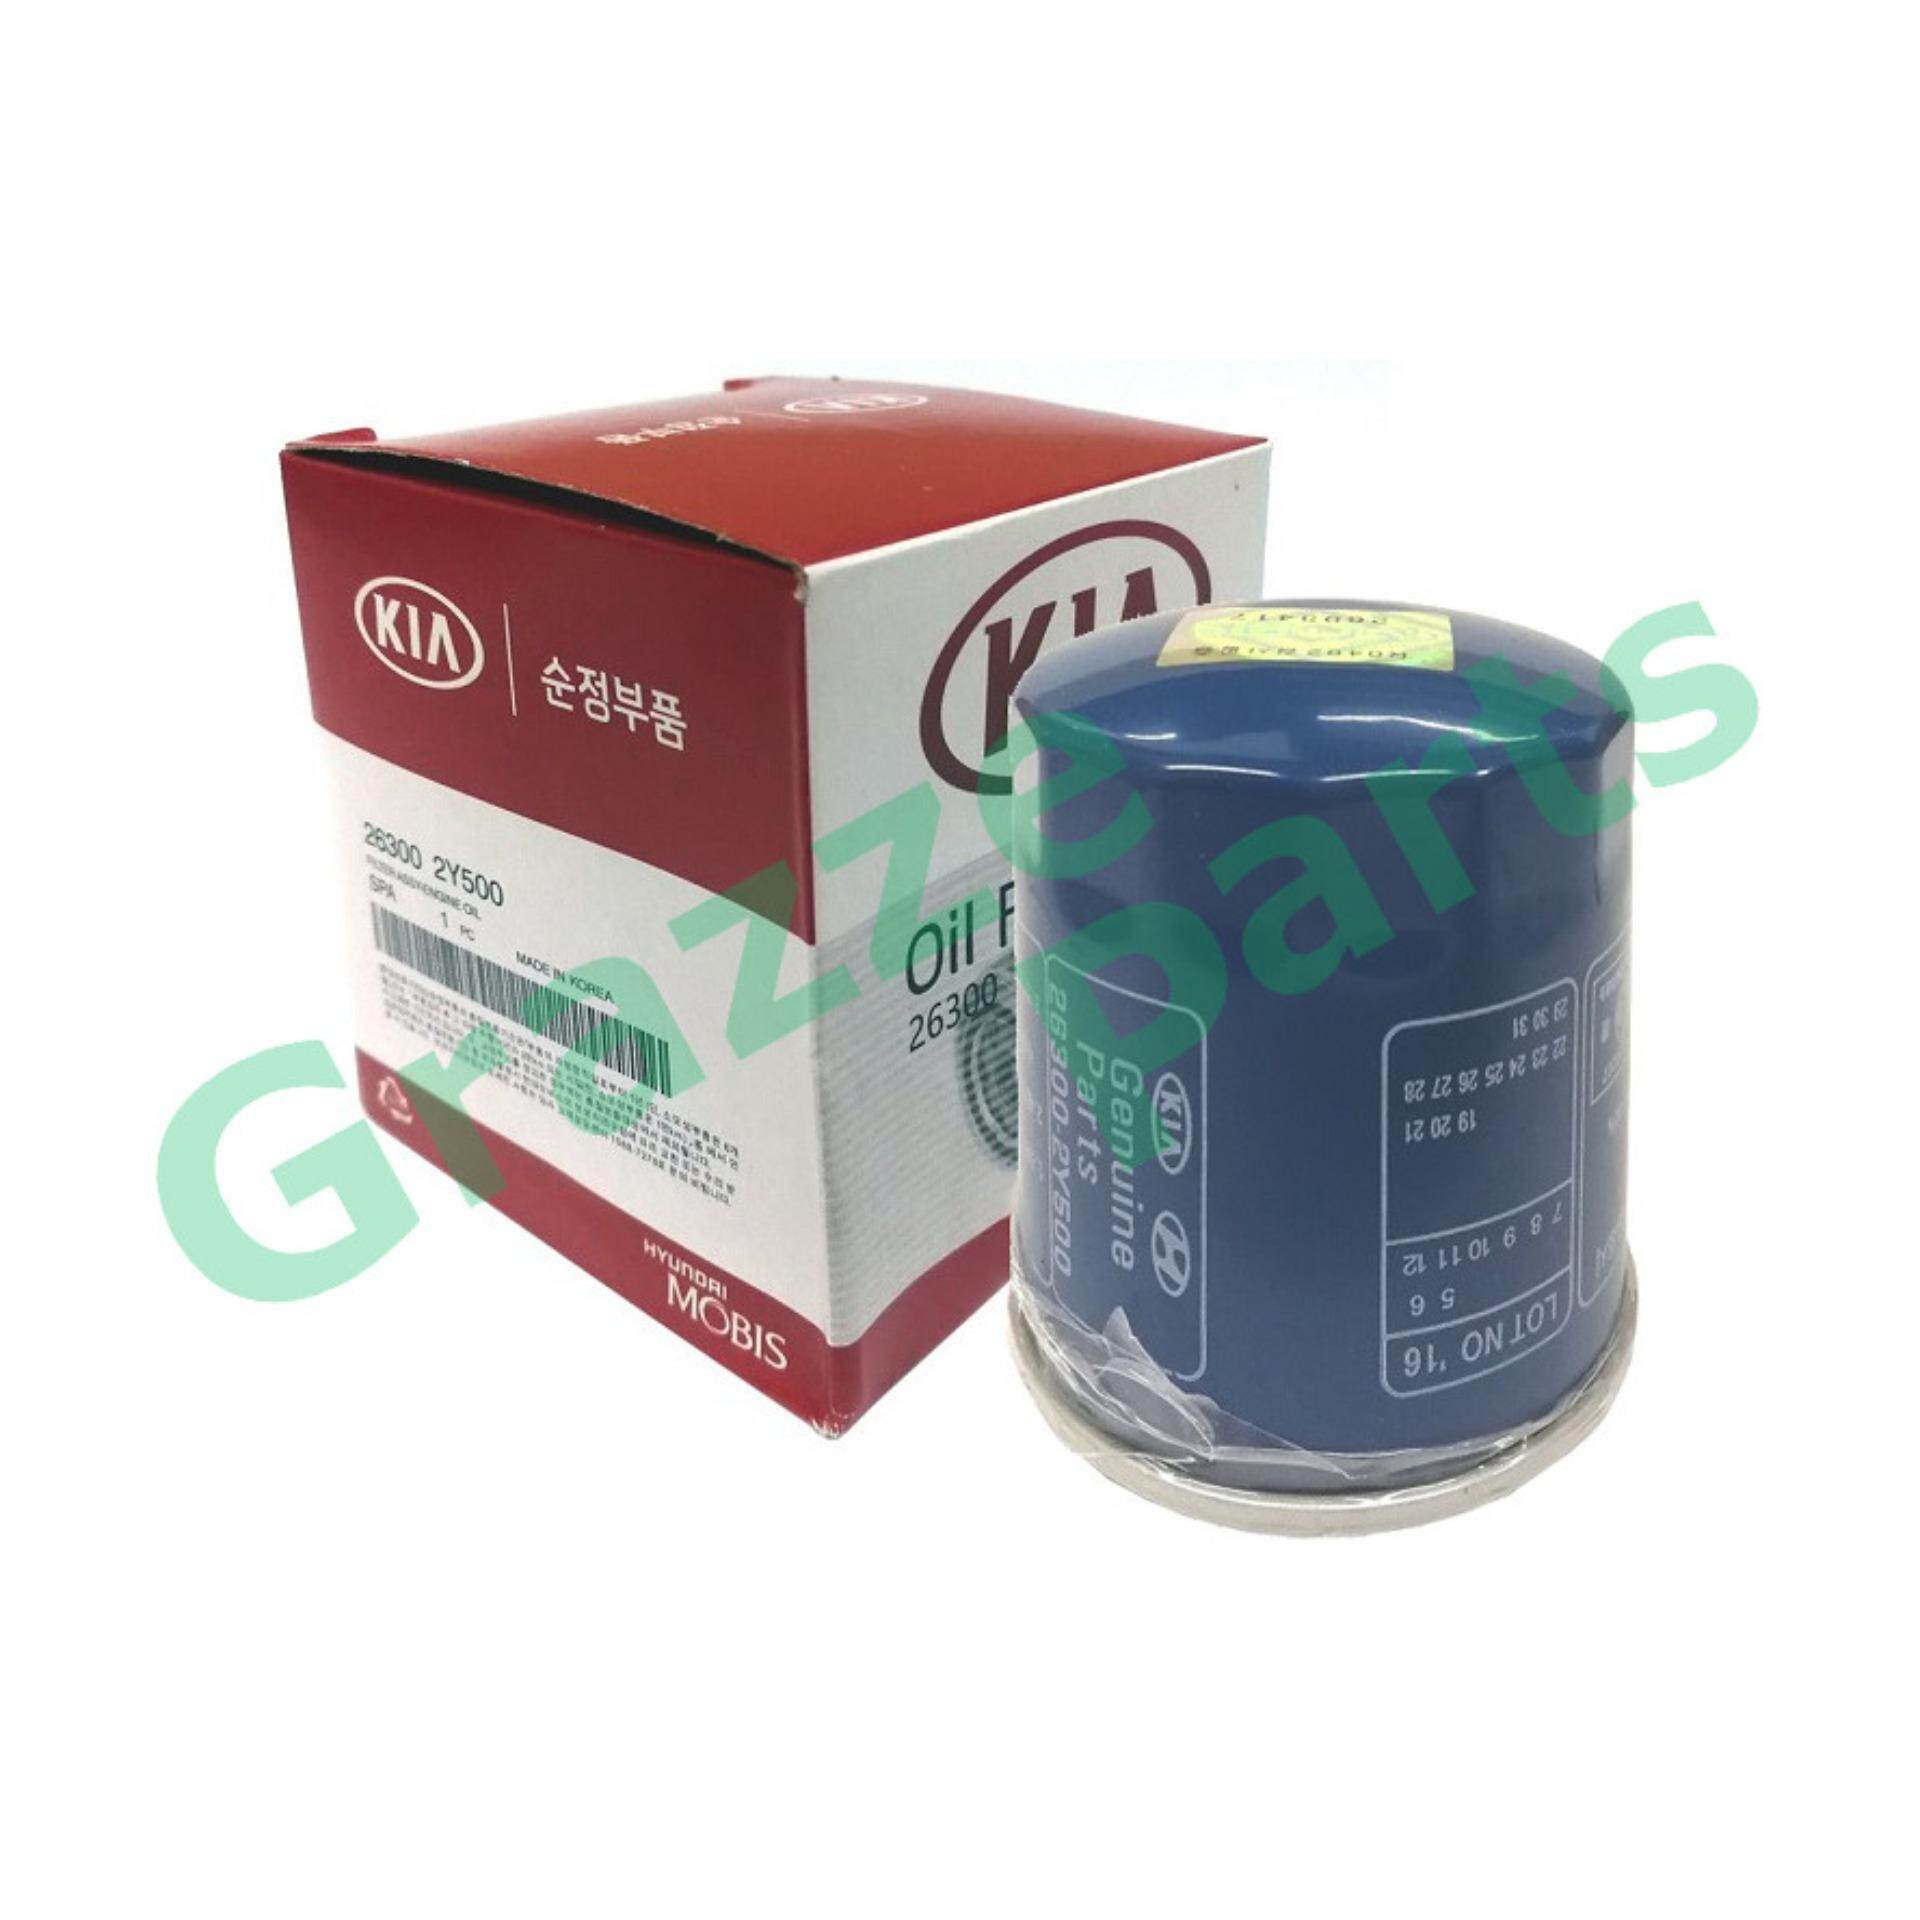 Hyundai And Kia Oil Filter 26300-2Y500 for Most Models